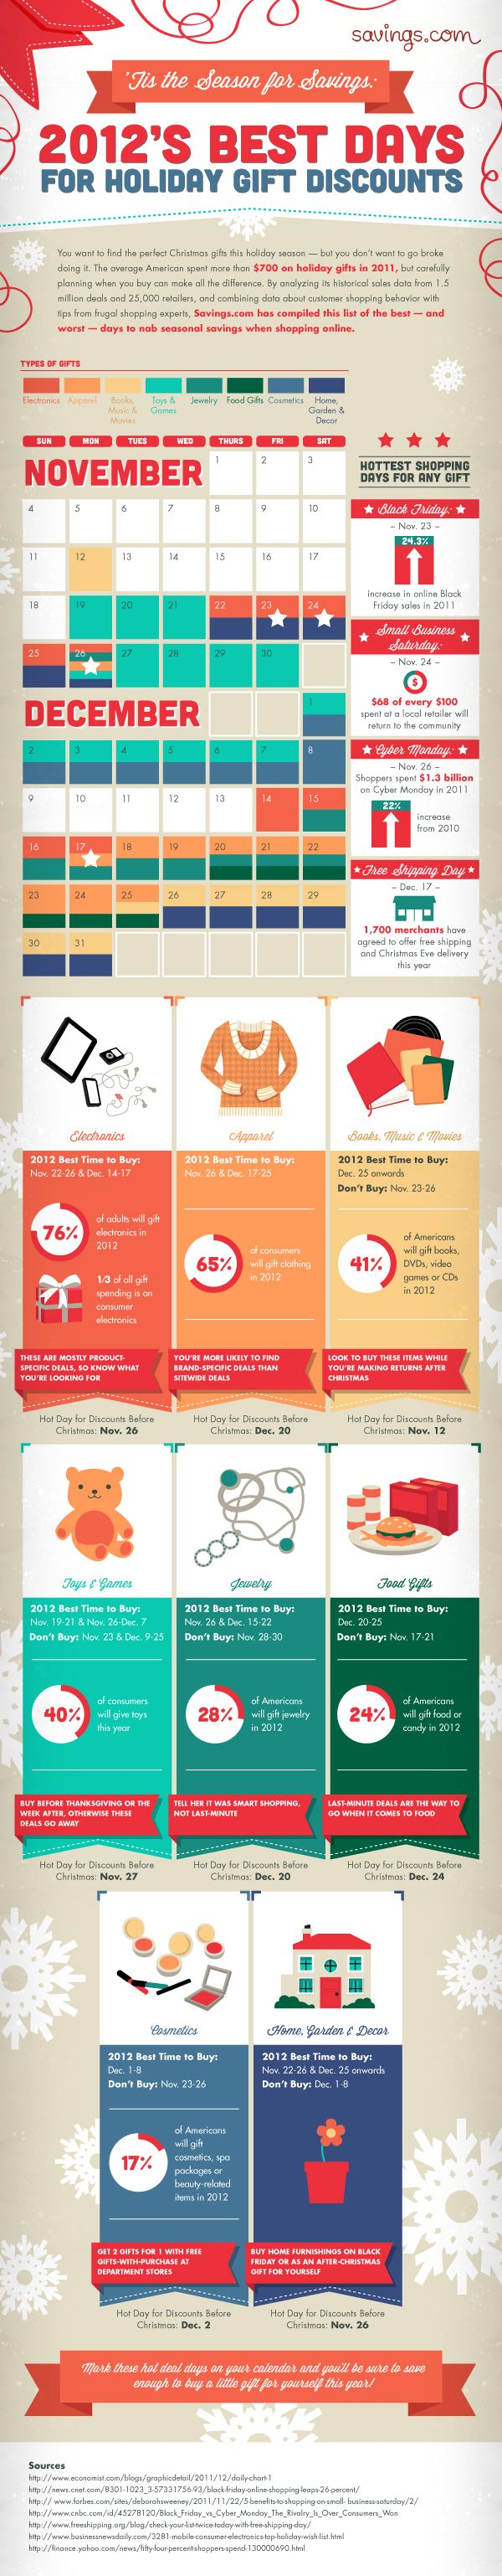 2012′s Best Days for Holiday Shopping, an infographic for MS & HS students.  Practice budget, story problem creation & solution, compare/contrast, prediction.  Supplement with ad's from current year to compare current year data to 2012.